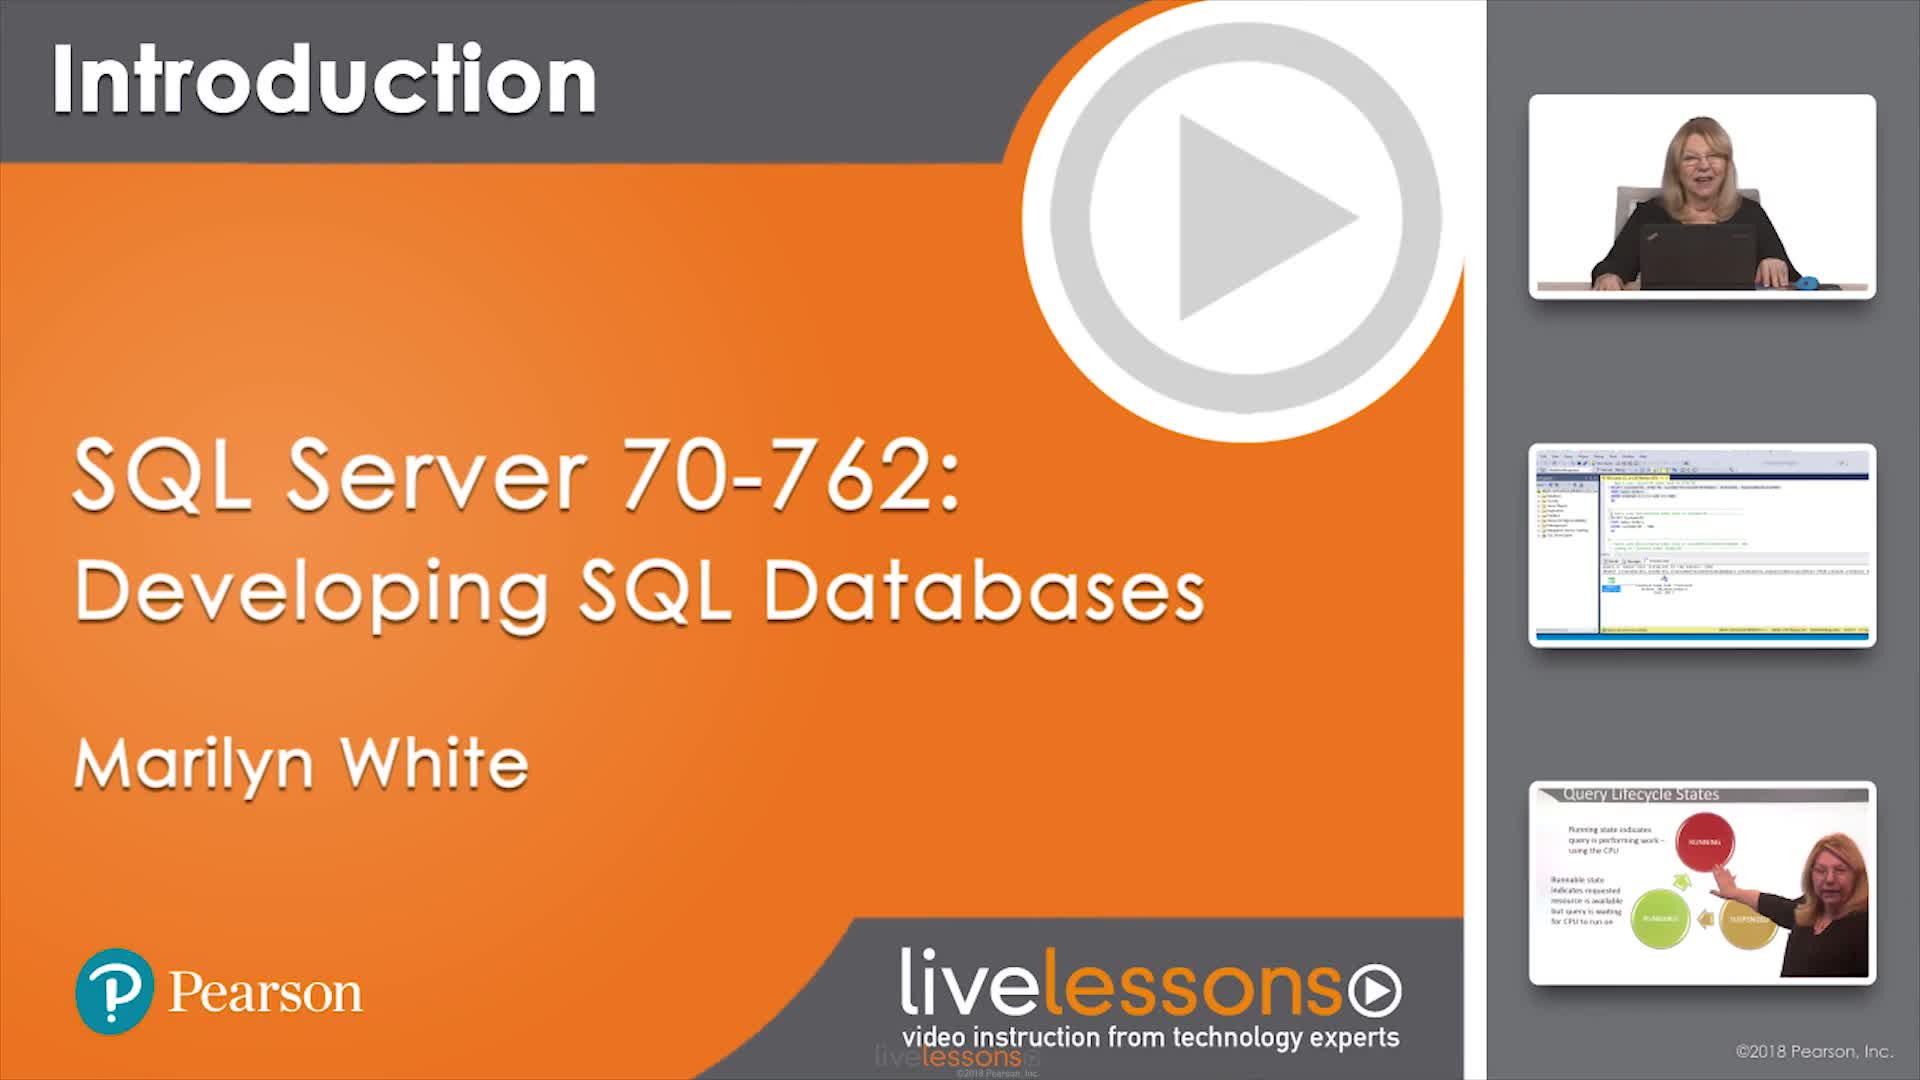 SQL Server 70-762: Developing SQL Databases LiveLessons